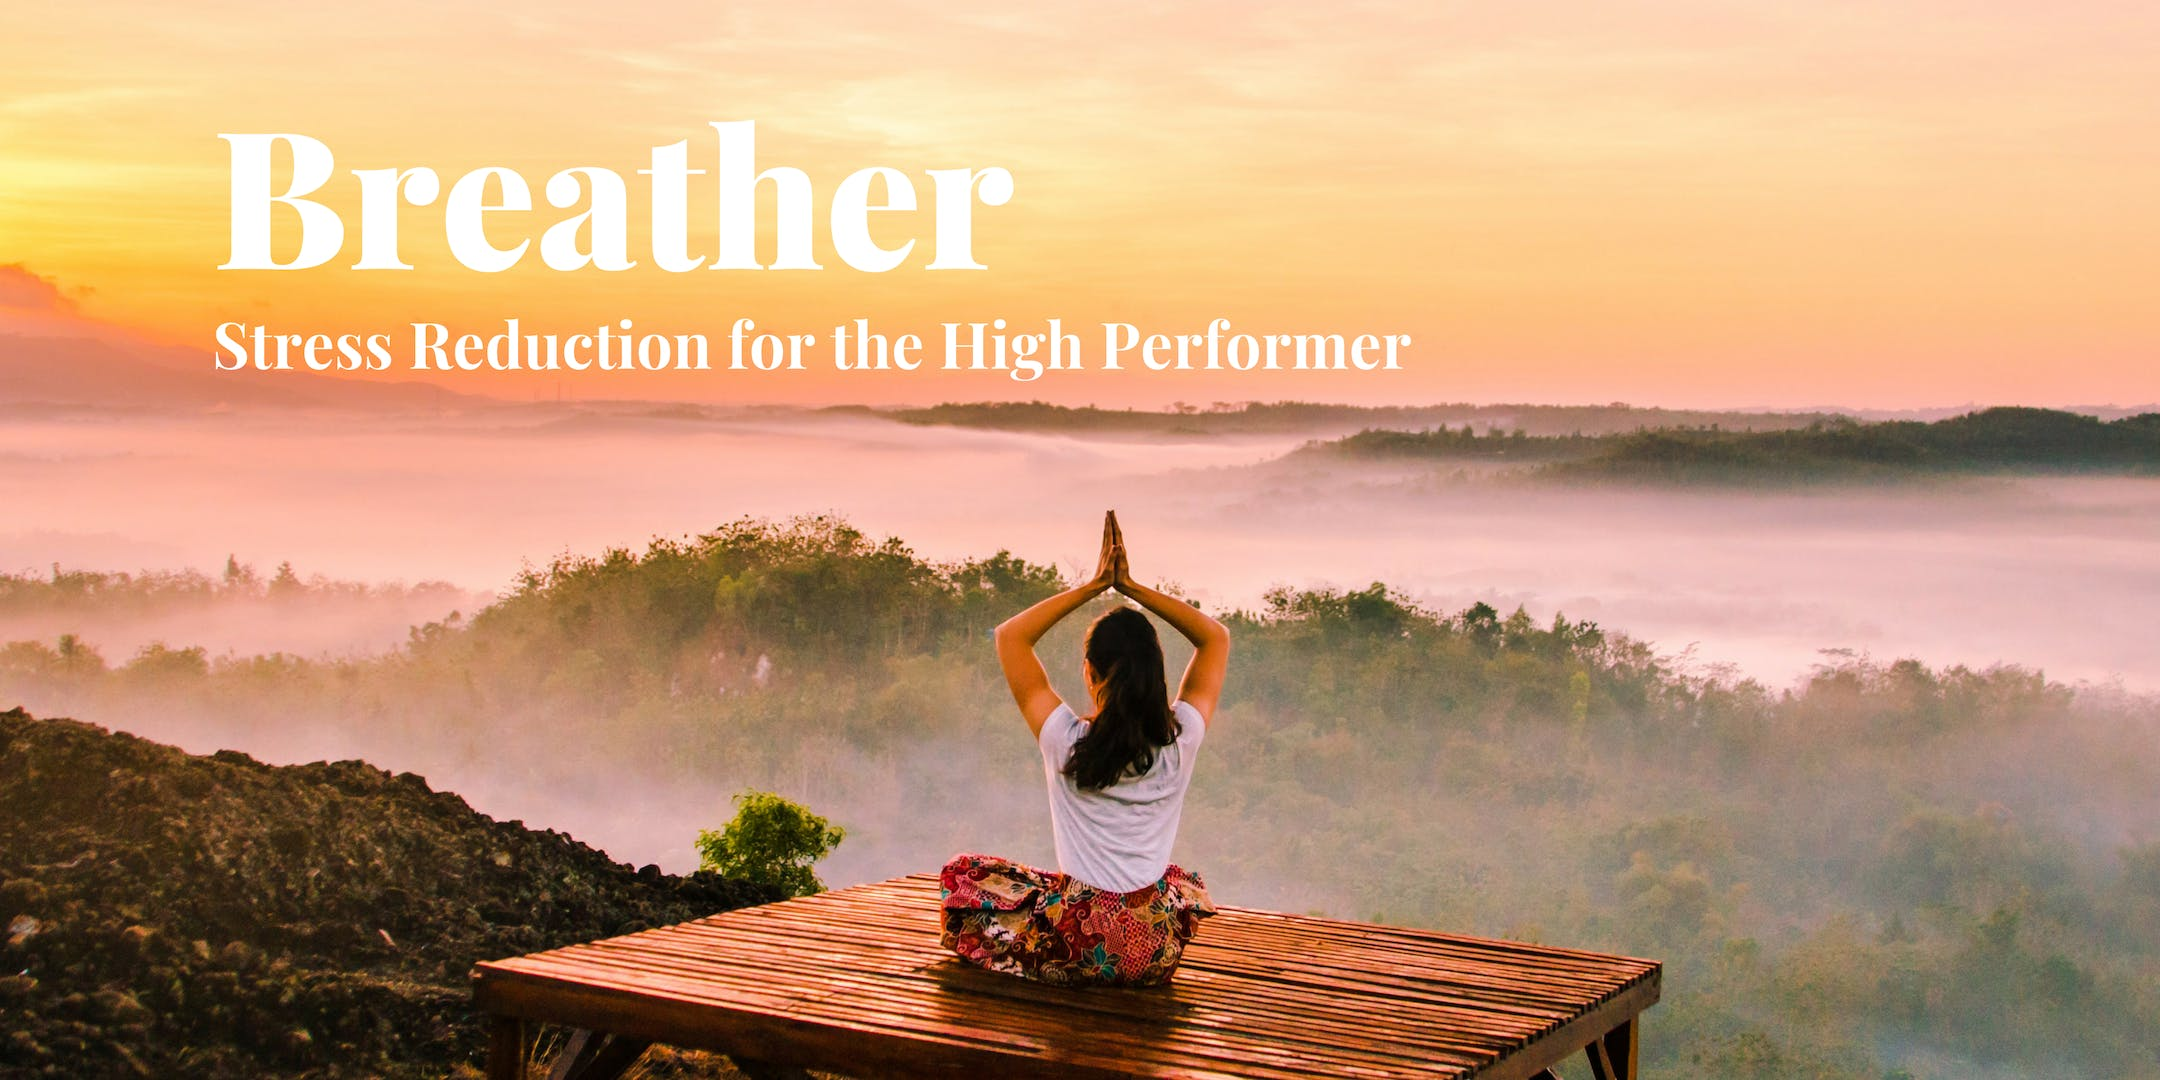 Breather - Stress reduction Workshop for the High Performer